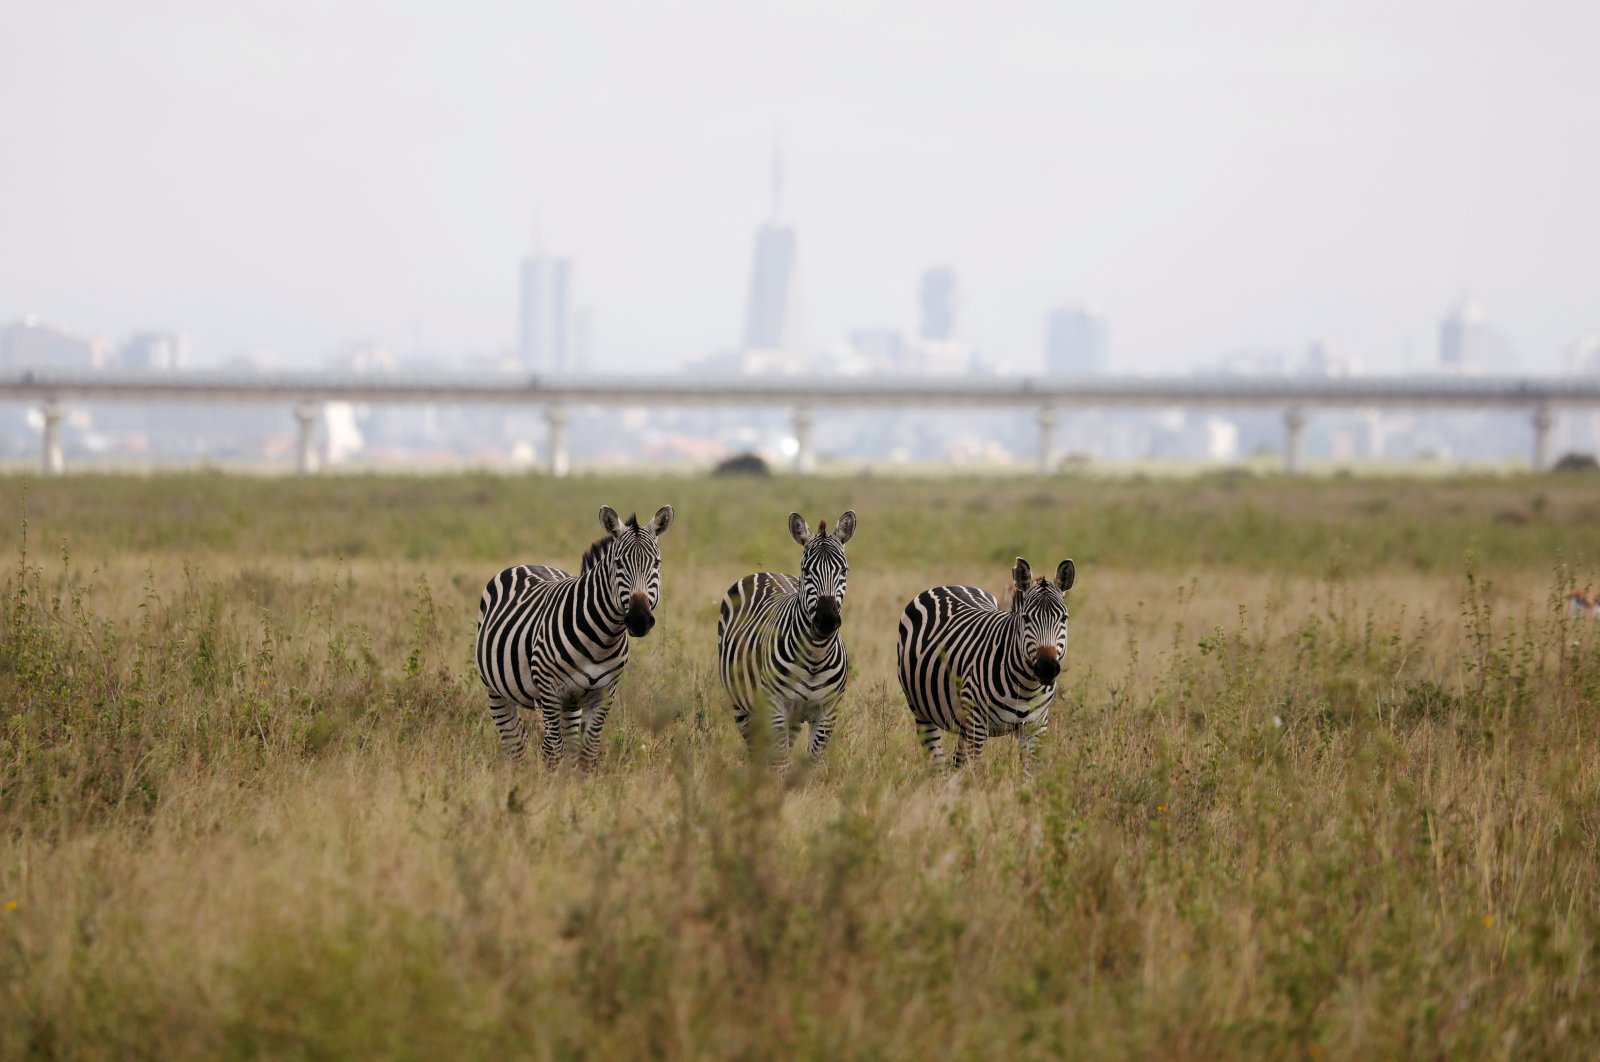 A view of zebras grazing with a bridge of the Standard Gauge Railway (SGR) line in the background, inside the Nairobi National Park in Nairobi, Kenya, June 26, 2020. (Reuters Photo)